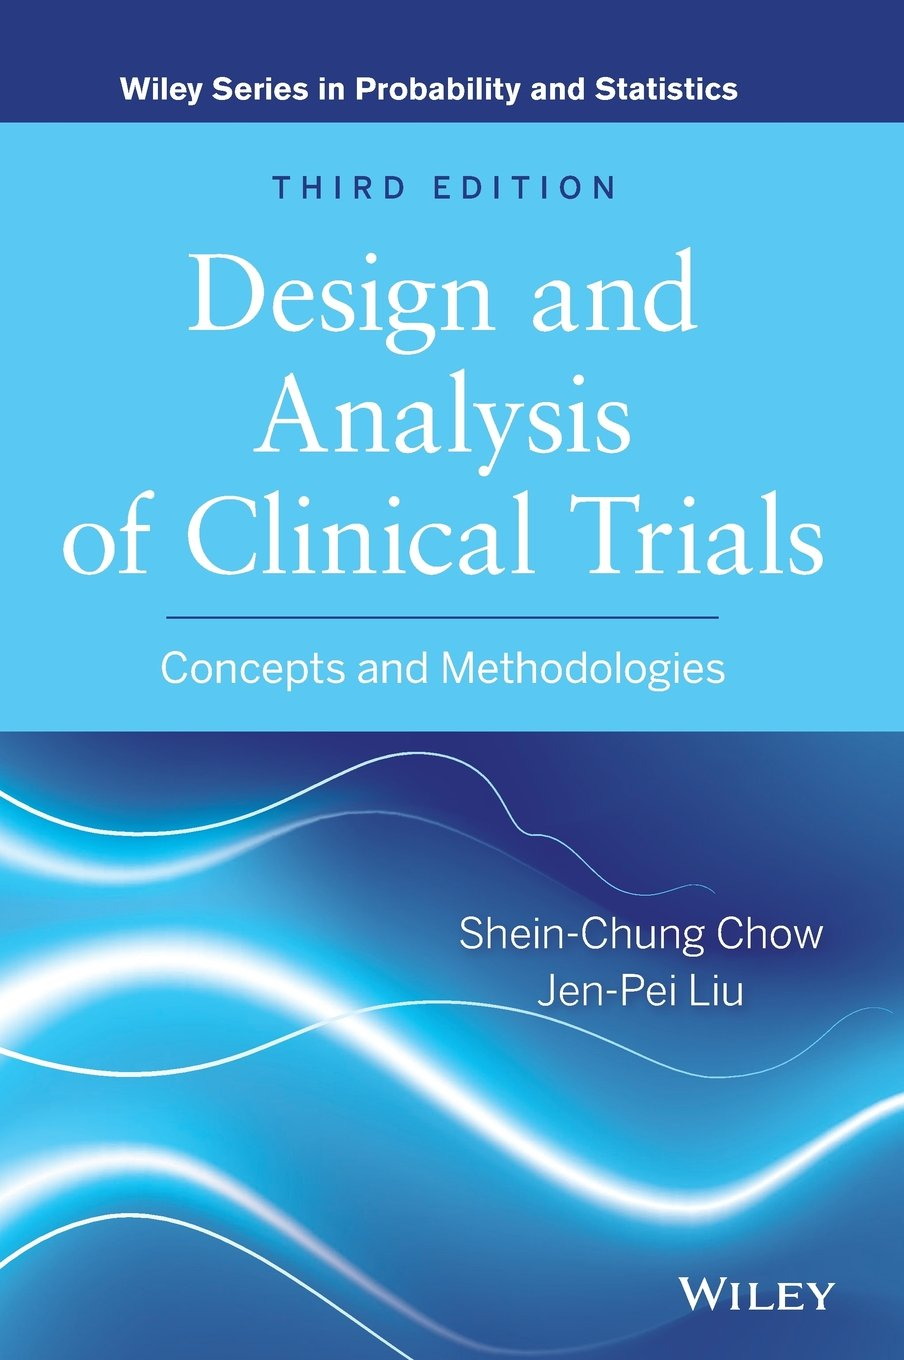 Design and Analysis of Clinical Trials: Concepts and Methodologies by Brand: Wiley